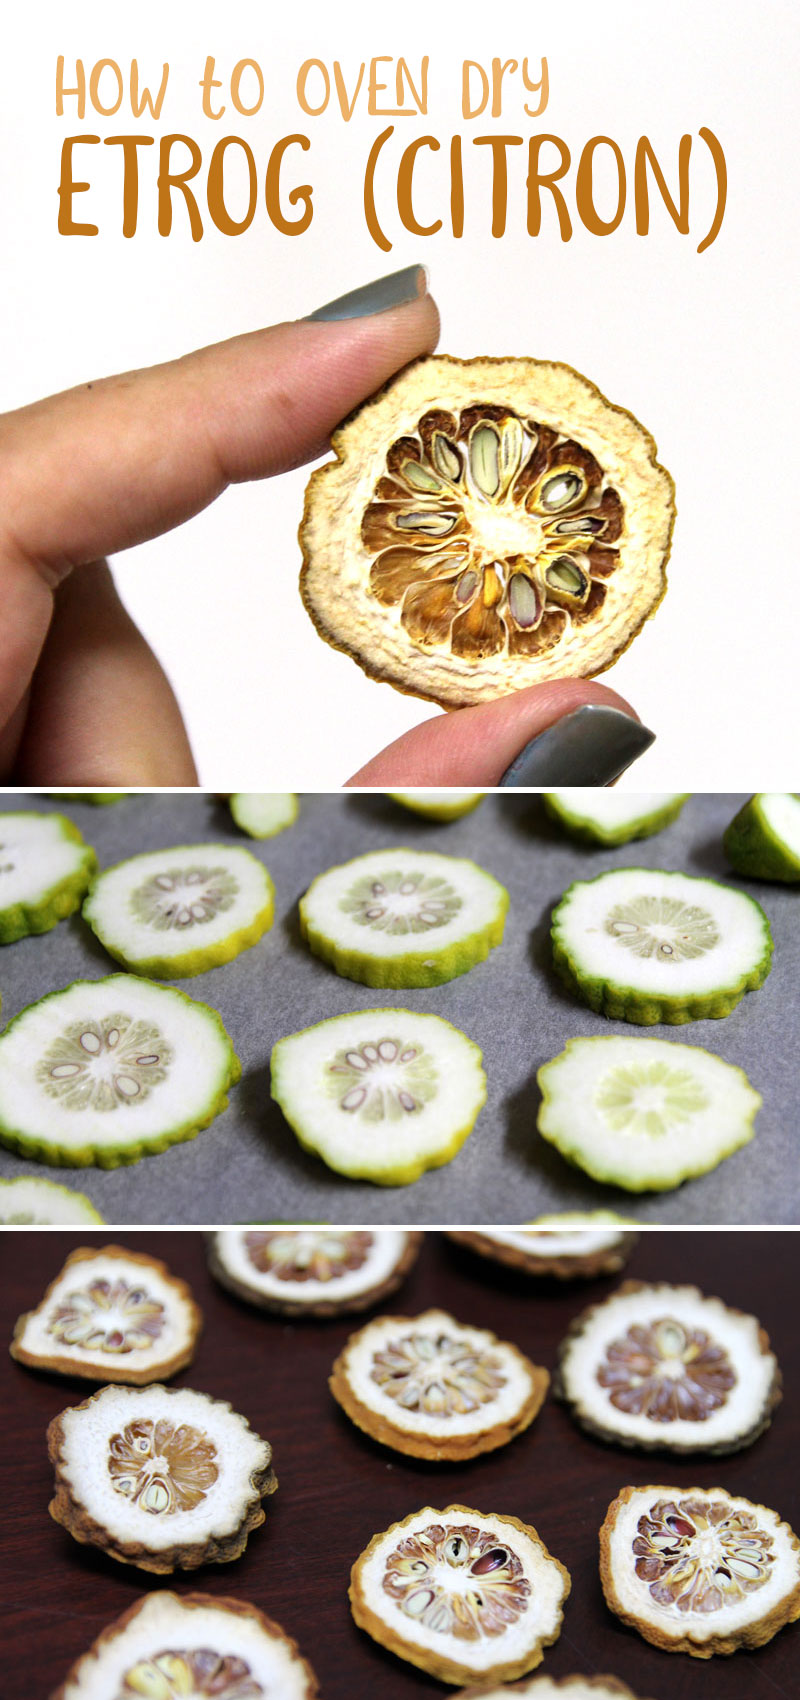 Click to learn how to make dried etrog - a great alternative to esrog jam! The thick skin gives this dried citrus fruit tutorial a unique spin, and it's great for crafts such as DIY Sukkah decorations. Make it right after Sukkot and save for next year.